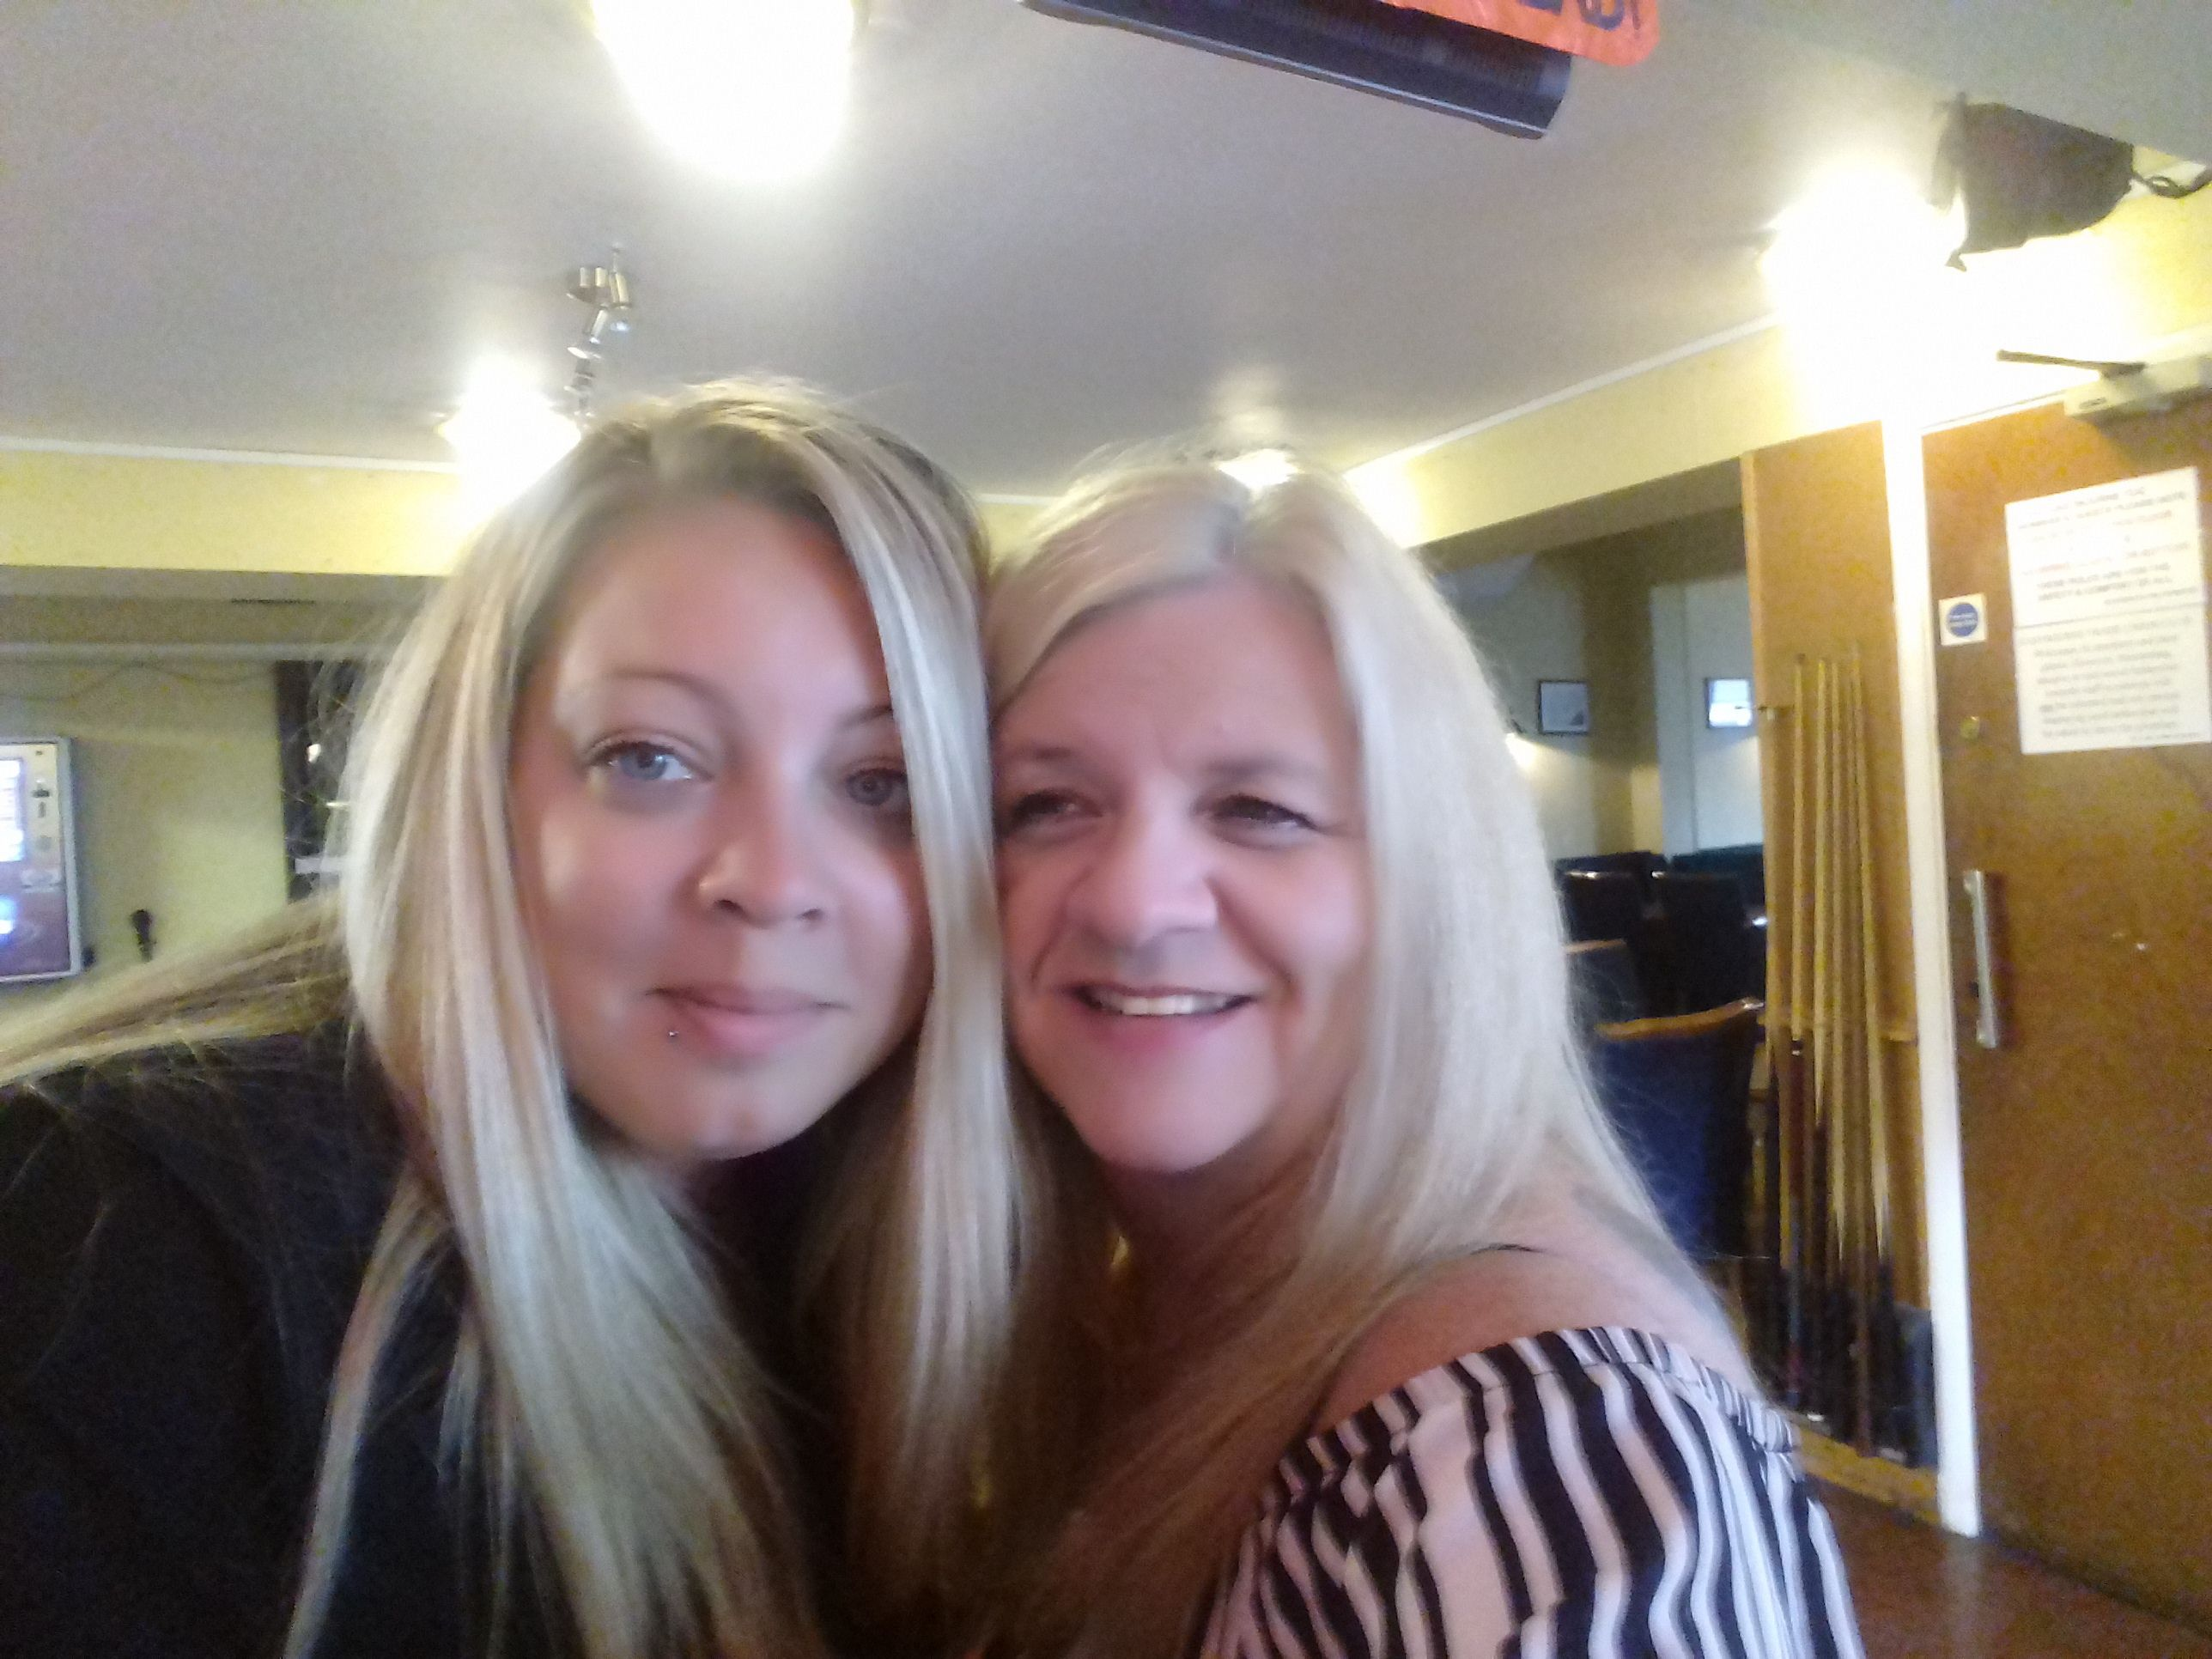 Over 50 dating in eastbourne